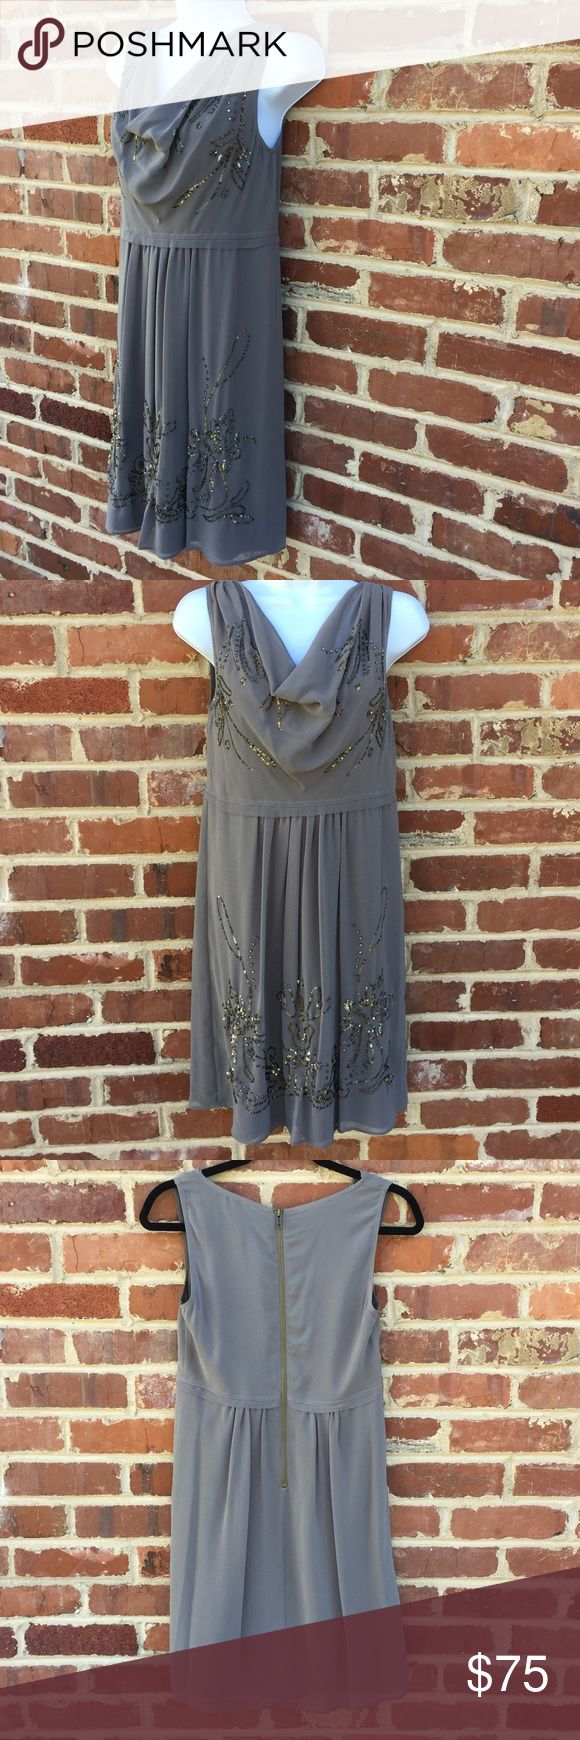 Robbi & Nikki Dress Anthropologie Robert Rodriguez •This neutral-shade dress by Robbi & Nikki has pretty bead embellishments and a flattering cowl neckline. If you want to add even more shimmer, add your favorite matte or metallic belt around the waist. •Gray crepe with gold floral sequin embellishment. •Cowl neckline. •Sleeveless. •Empire waist. •Pleating off waist tapers through layered A-line skirt. •Exposed back zip. •Polyester. •Brand new without tags • Anthropologie…